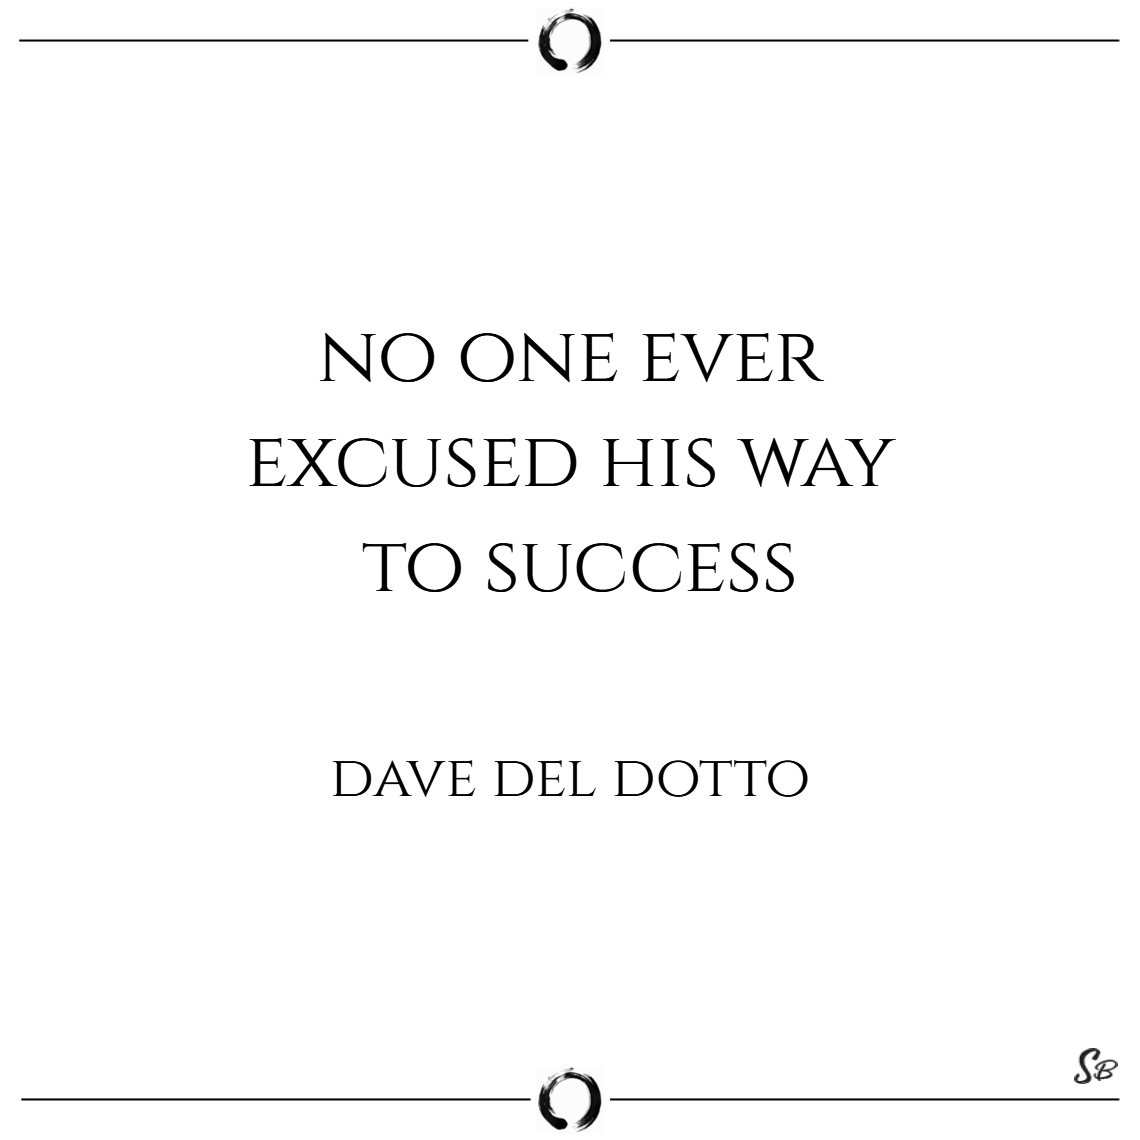 No one ever excused his way to success. – dave del